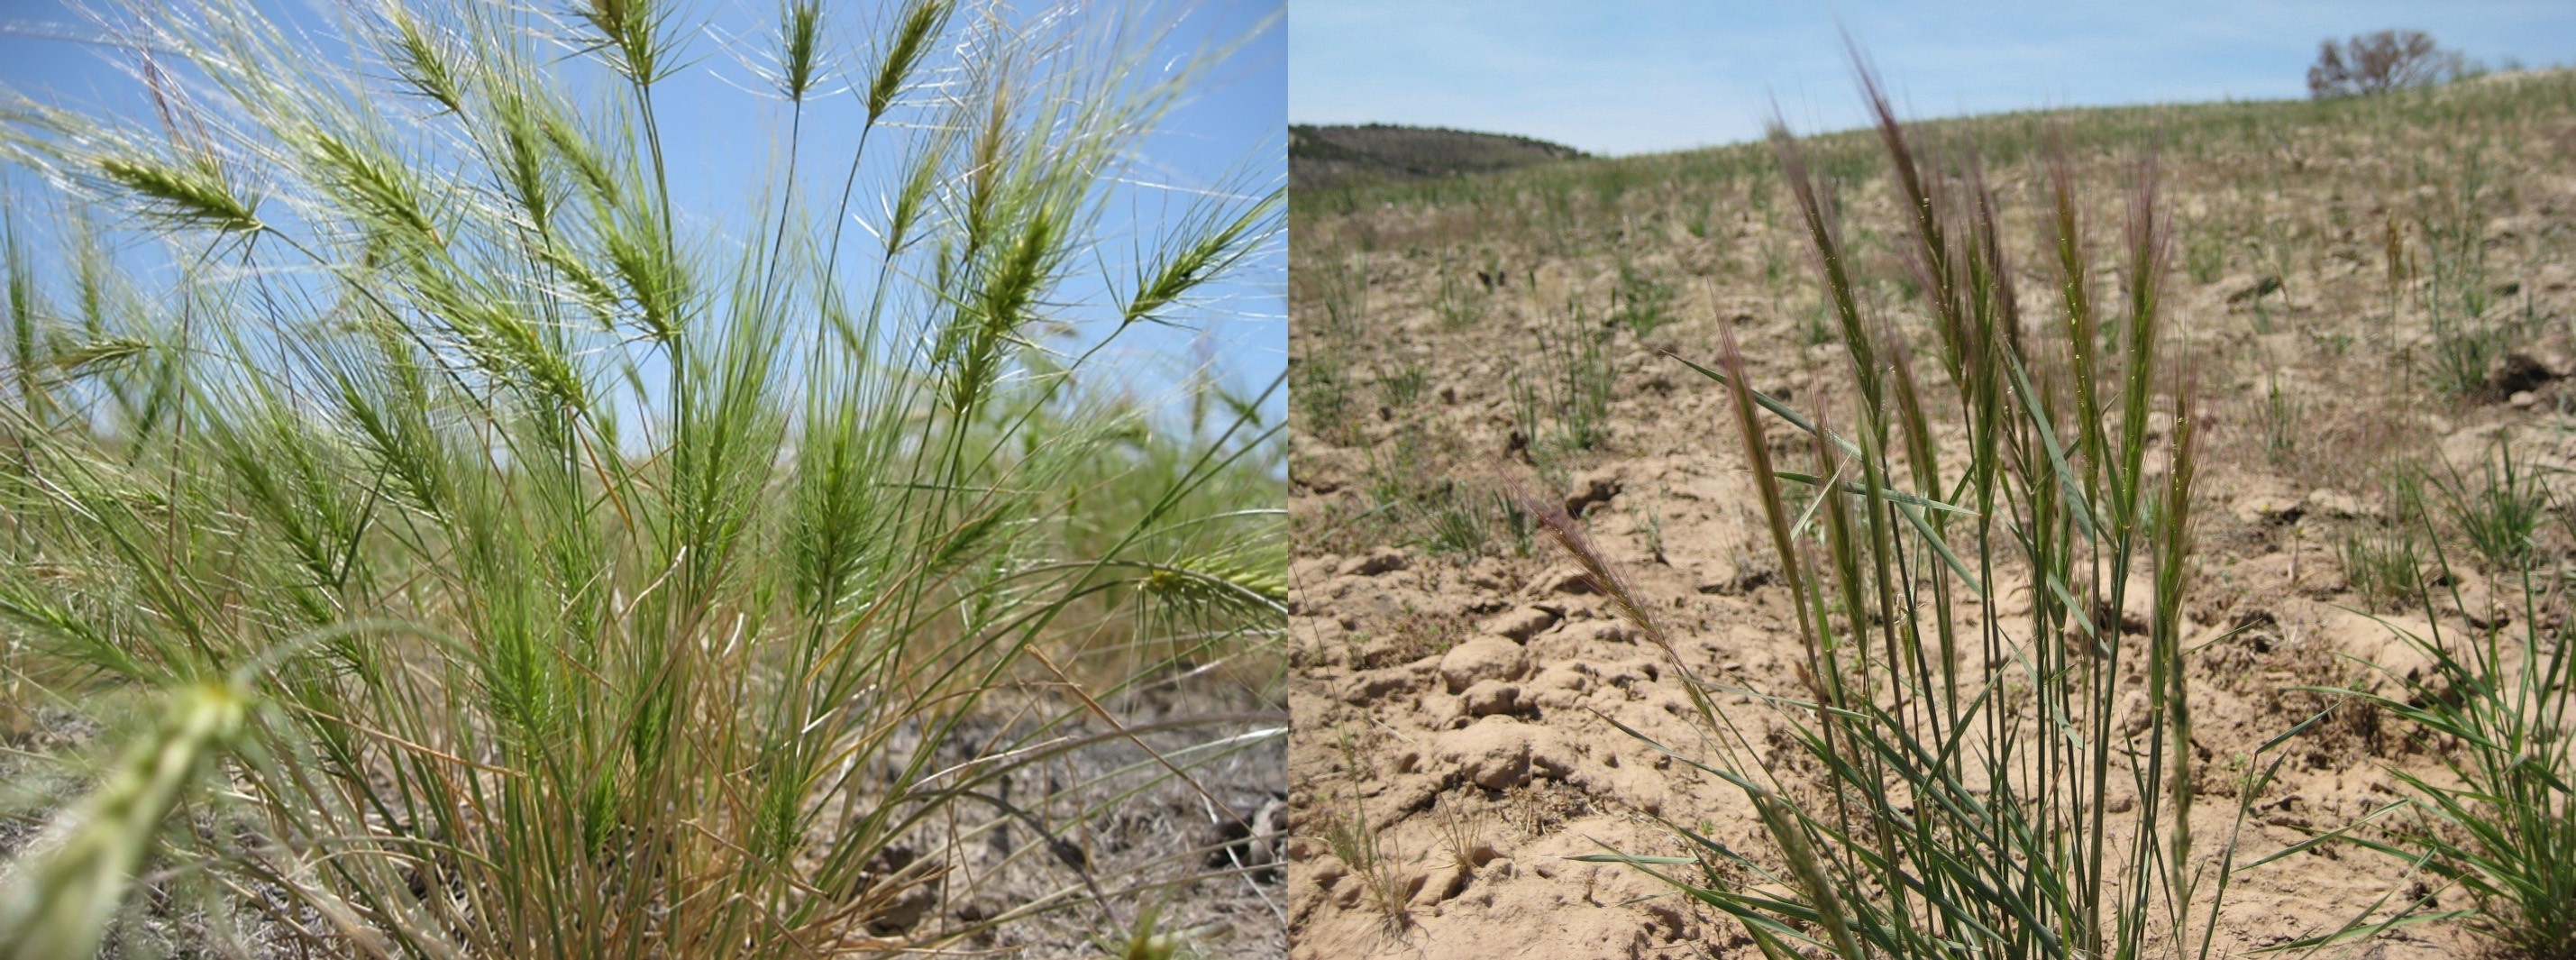 Side-by-side comparison of two green bunch grasses that look similar appearance.